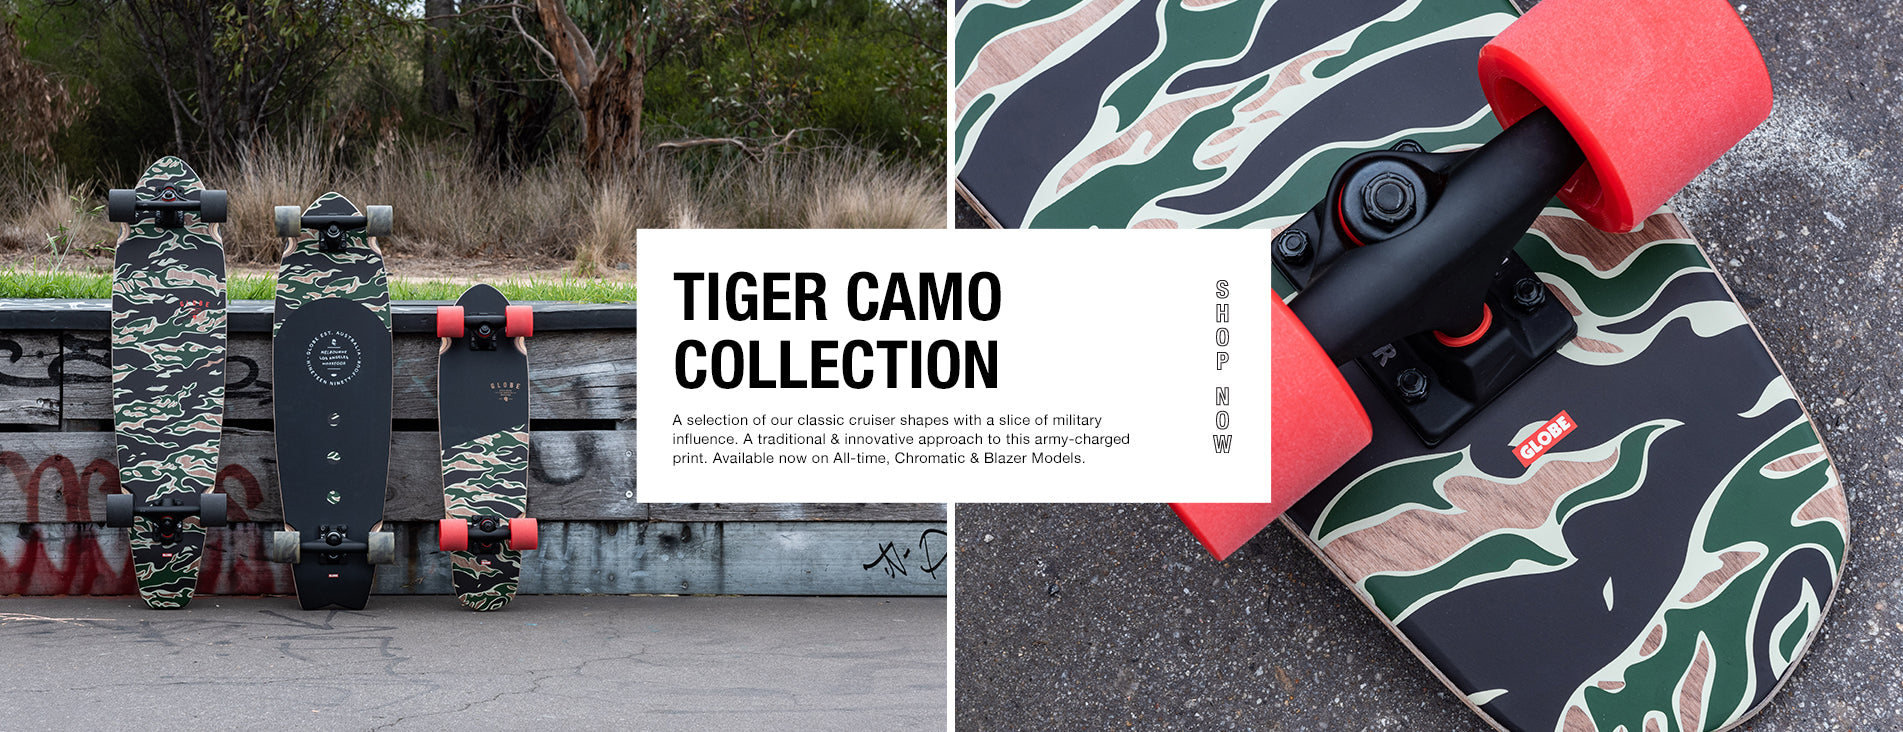 TIGER CAMO SKATEBOARDS